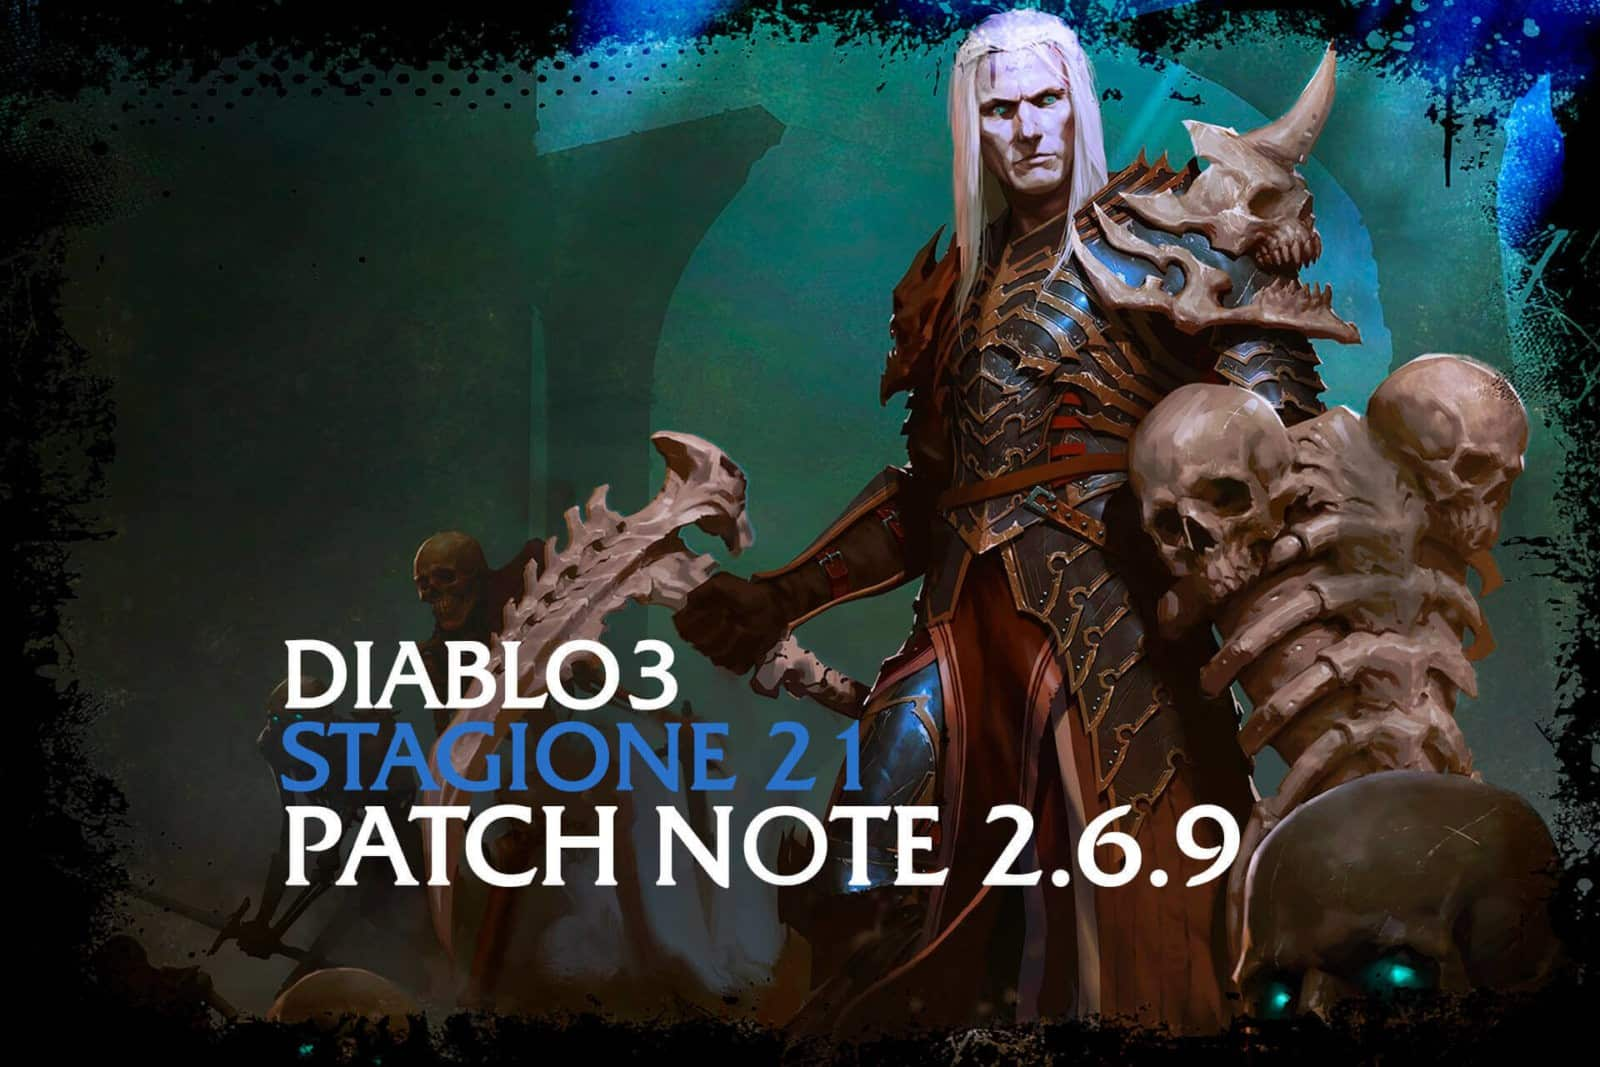 Diablo 3 Stagione 21 Patch Note 2.6.9